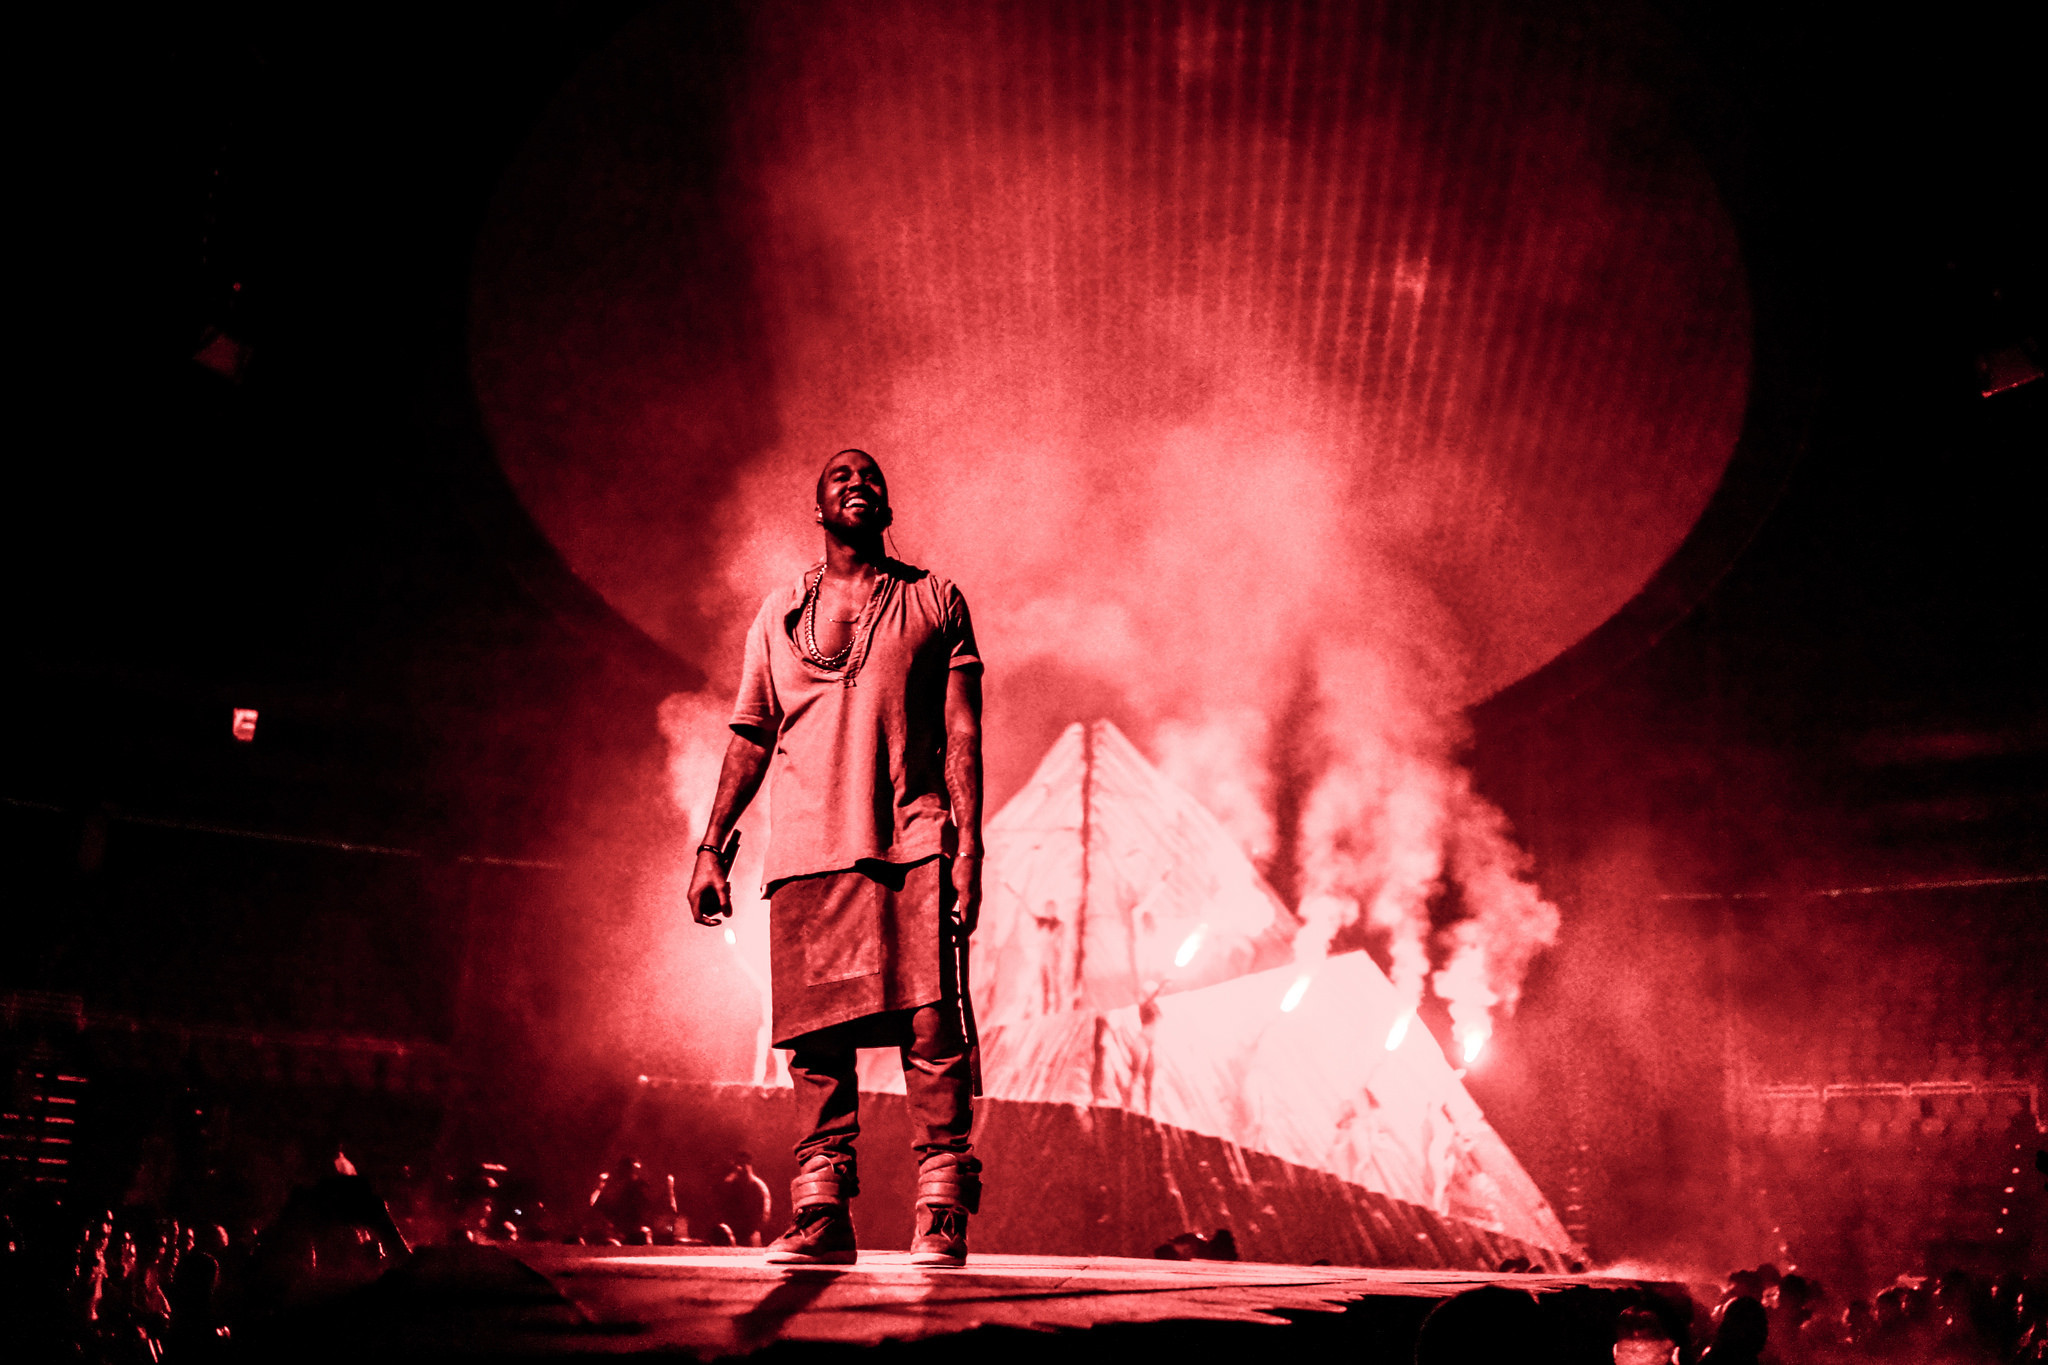 2048x1365 HD YEEZUS Tour Wallpapers (Desktop & Phone) [UPDATED!!]